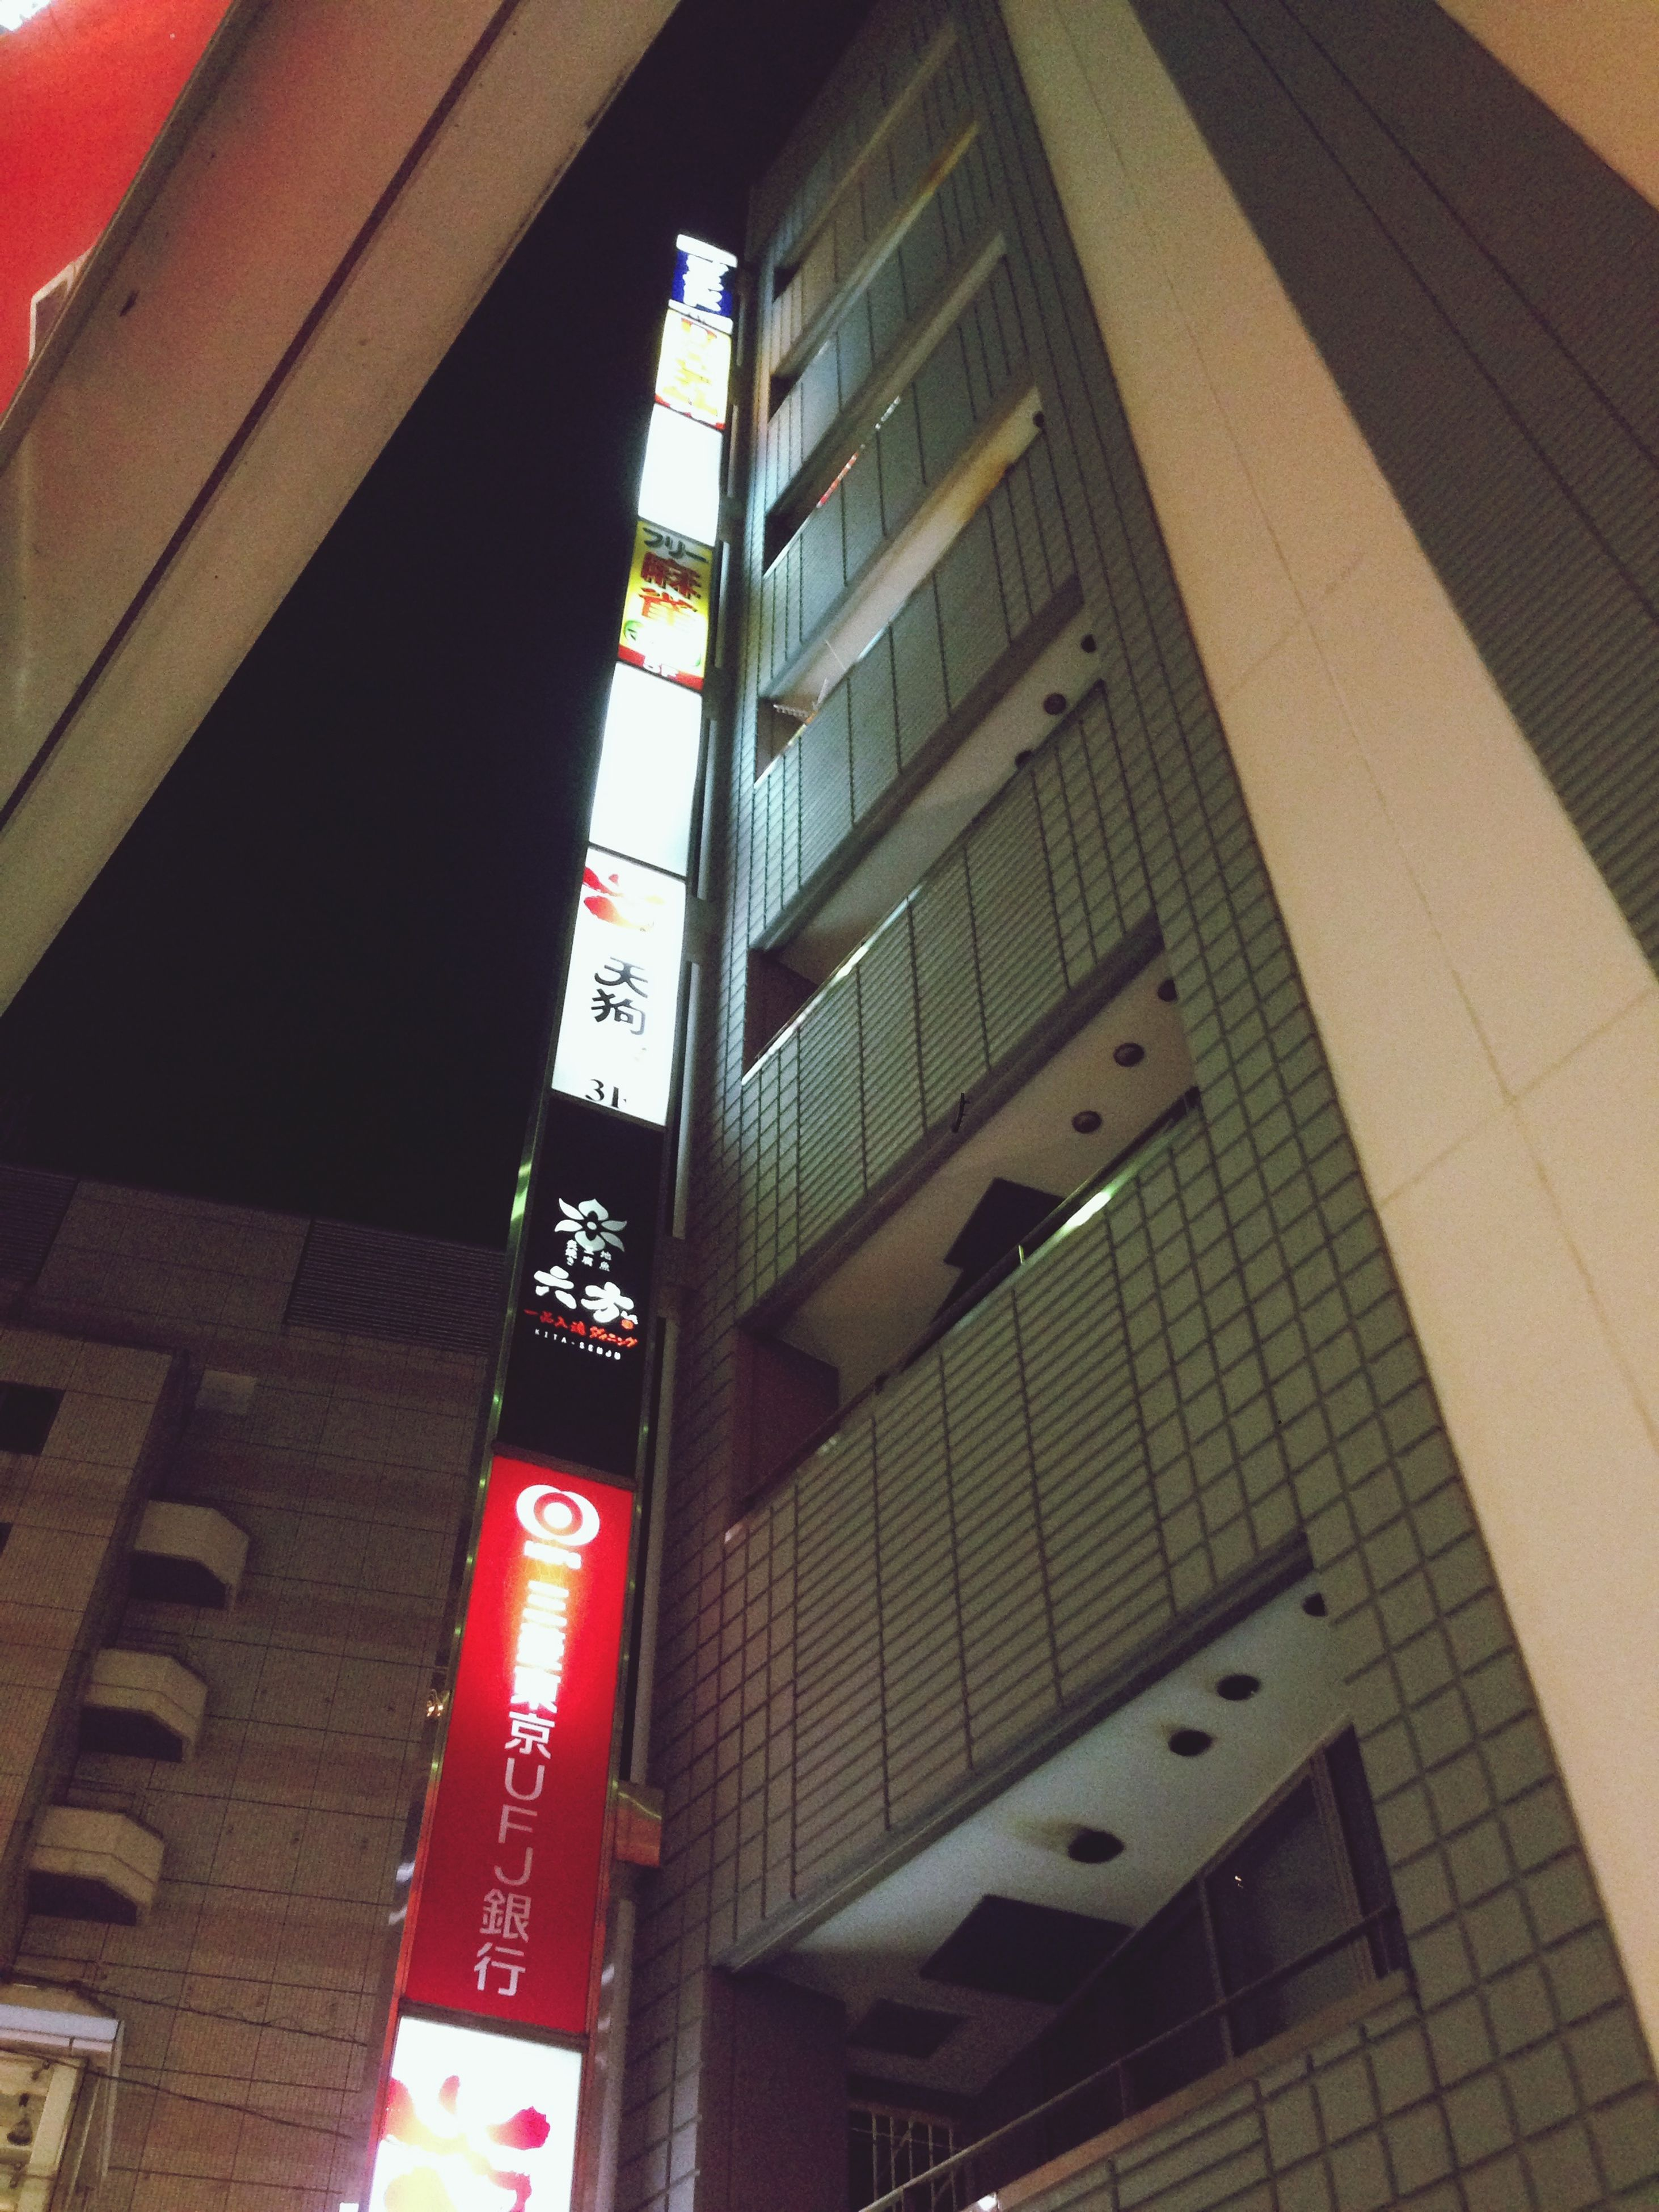 architecture, building exterior, built structure, low angle view, city, illuminated, building, text, night, city life, residential building, communication, modern, outdoors, no people, residential structure, lighting equipment, tall - high, red, office building